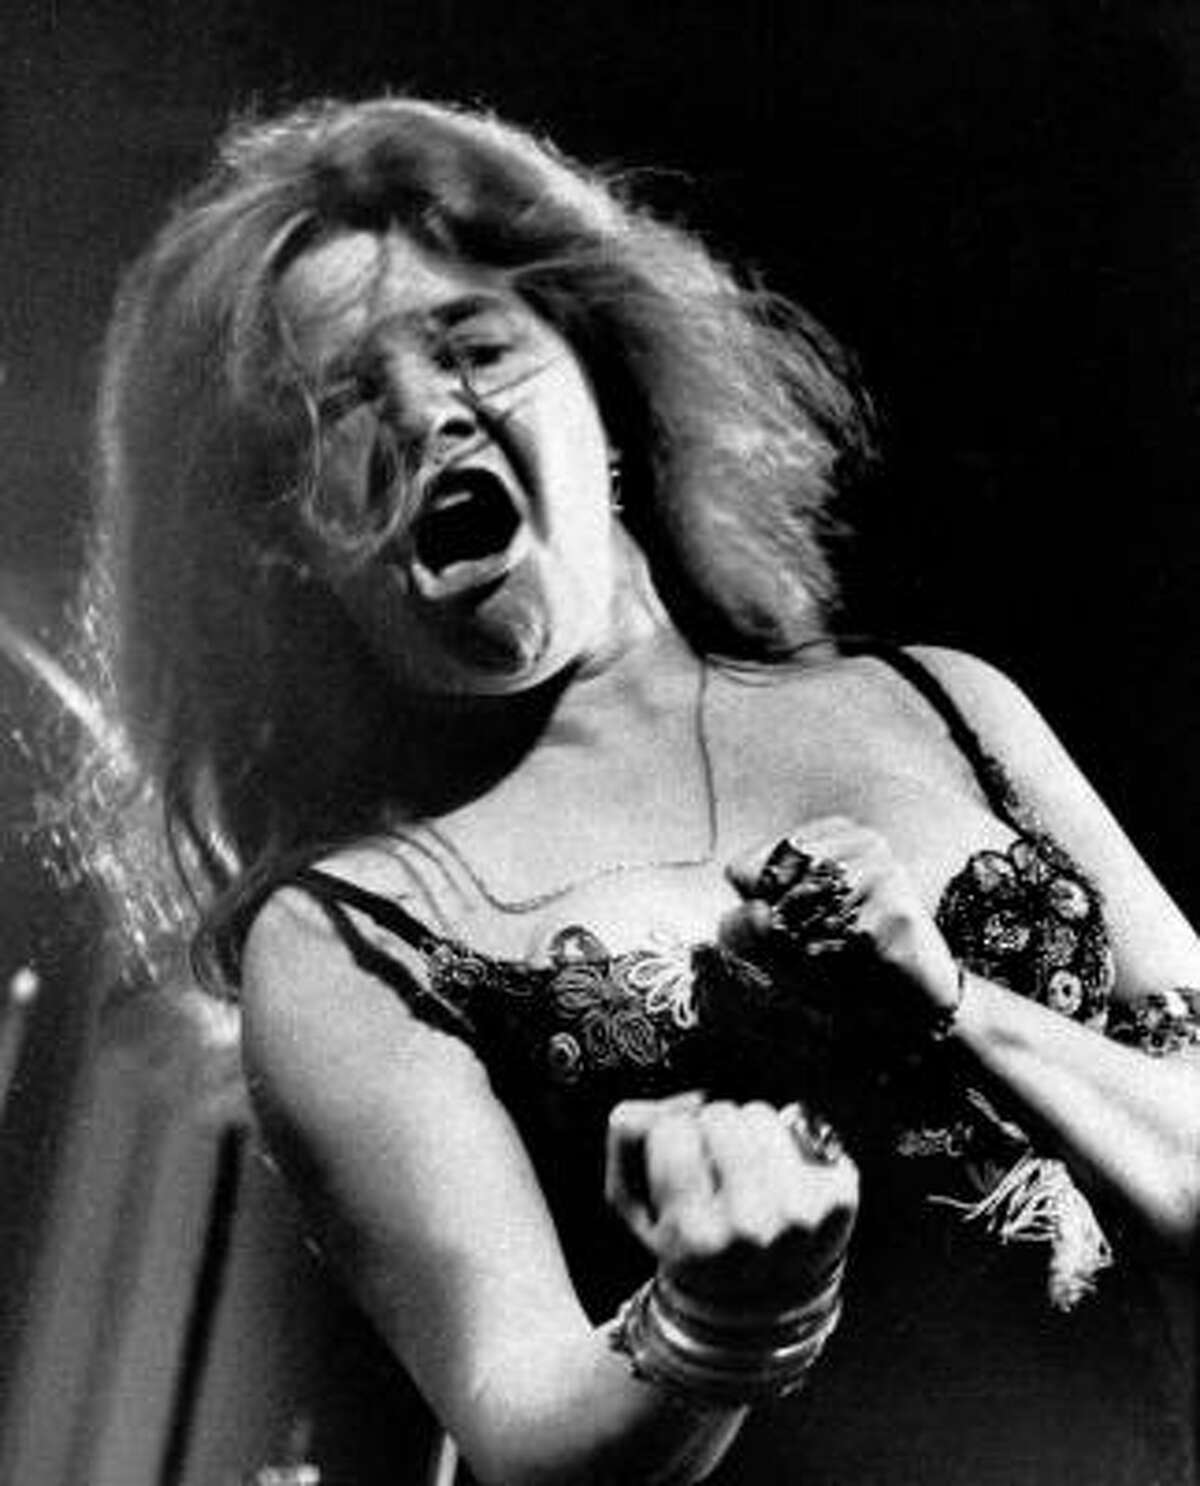 Blues/rock singer Janis Joplin performs at the Newport Folk Festival with her band Big Brother and the Holding Company on July 29, 1968. She died in 1970 at age 27.